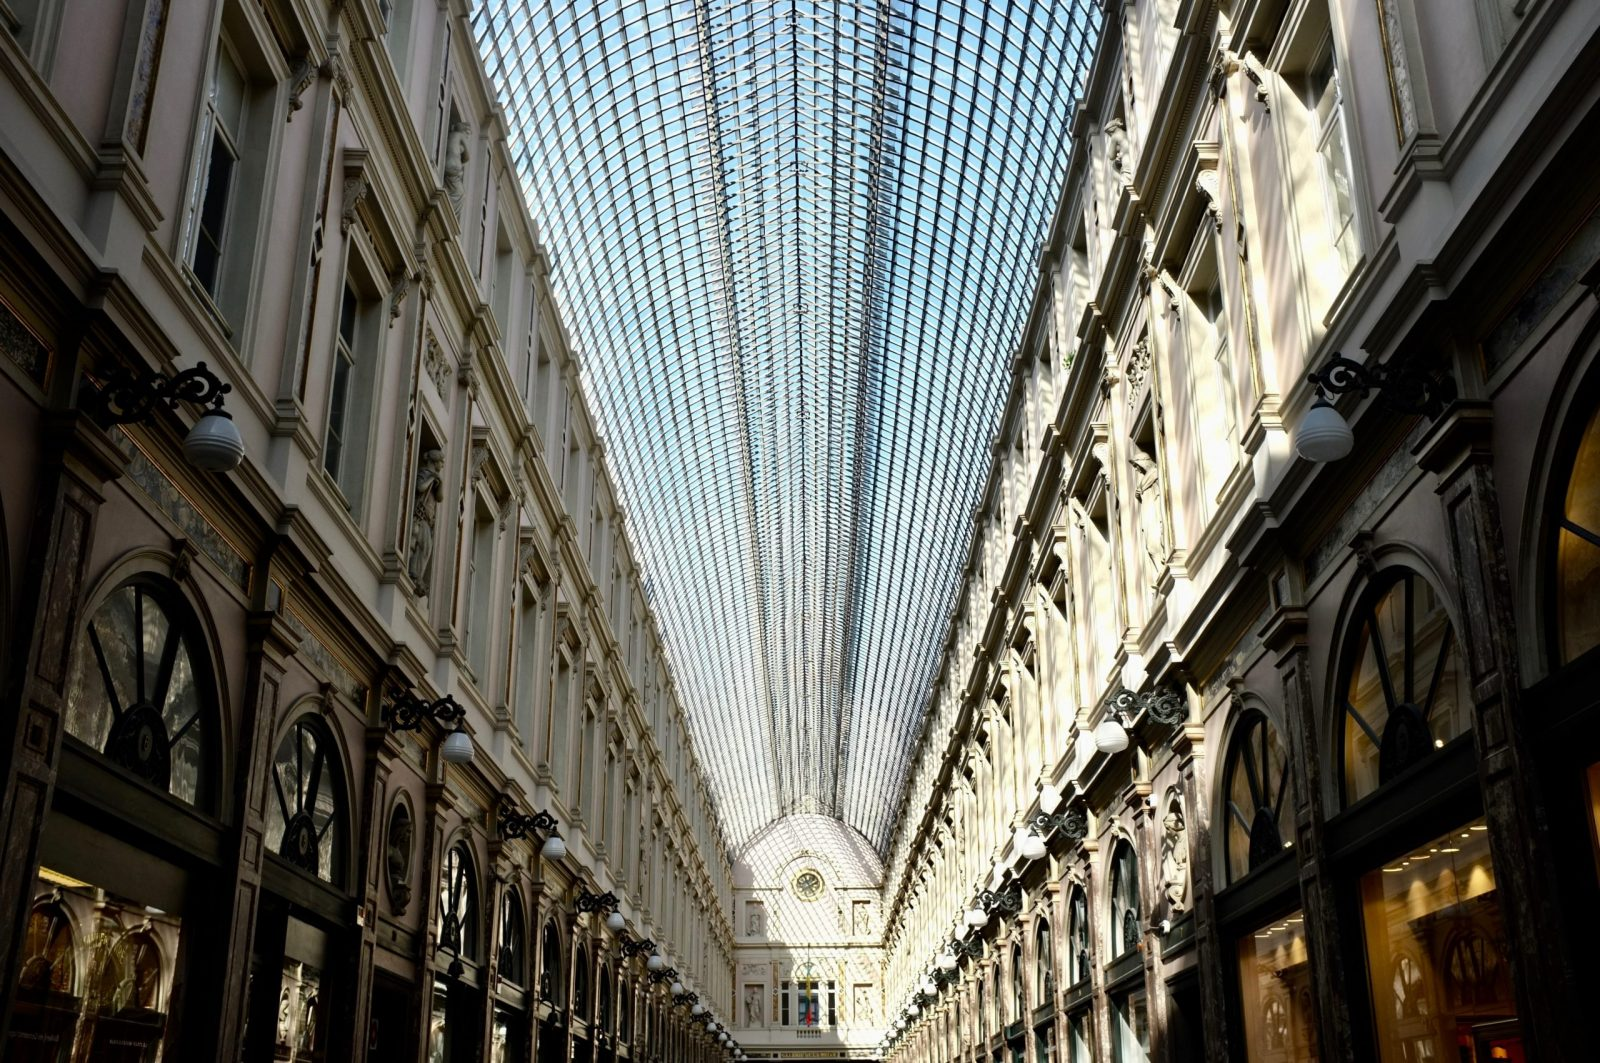 Private Tour Brussels, Shopping by Amandine Cornillon